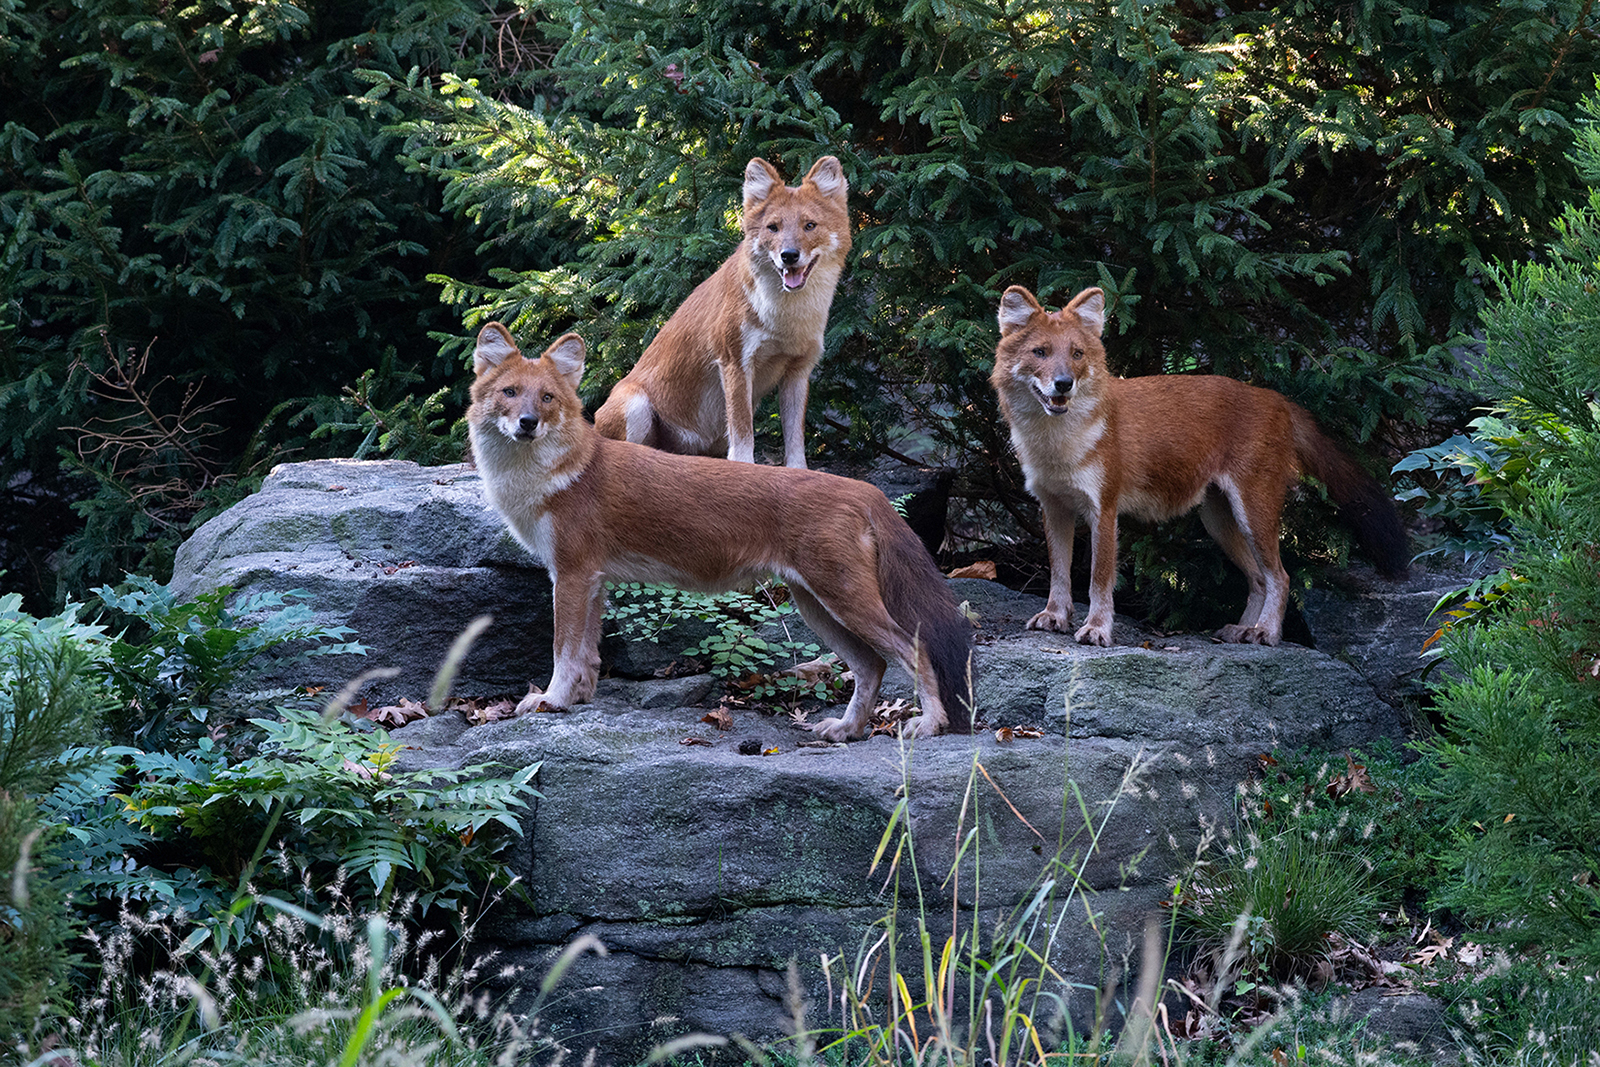 A Dhole New World